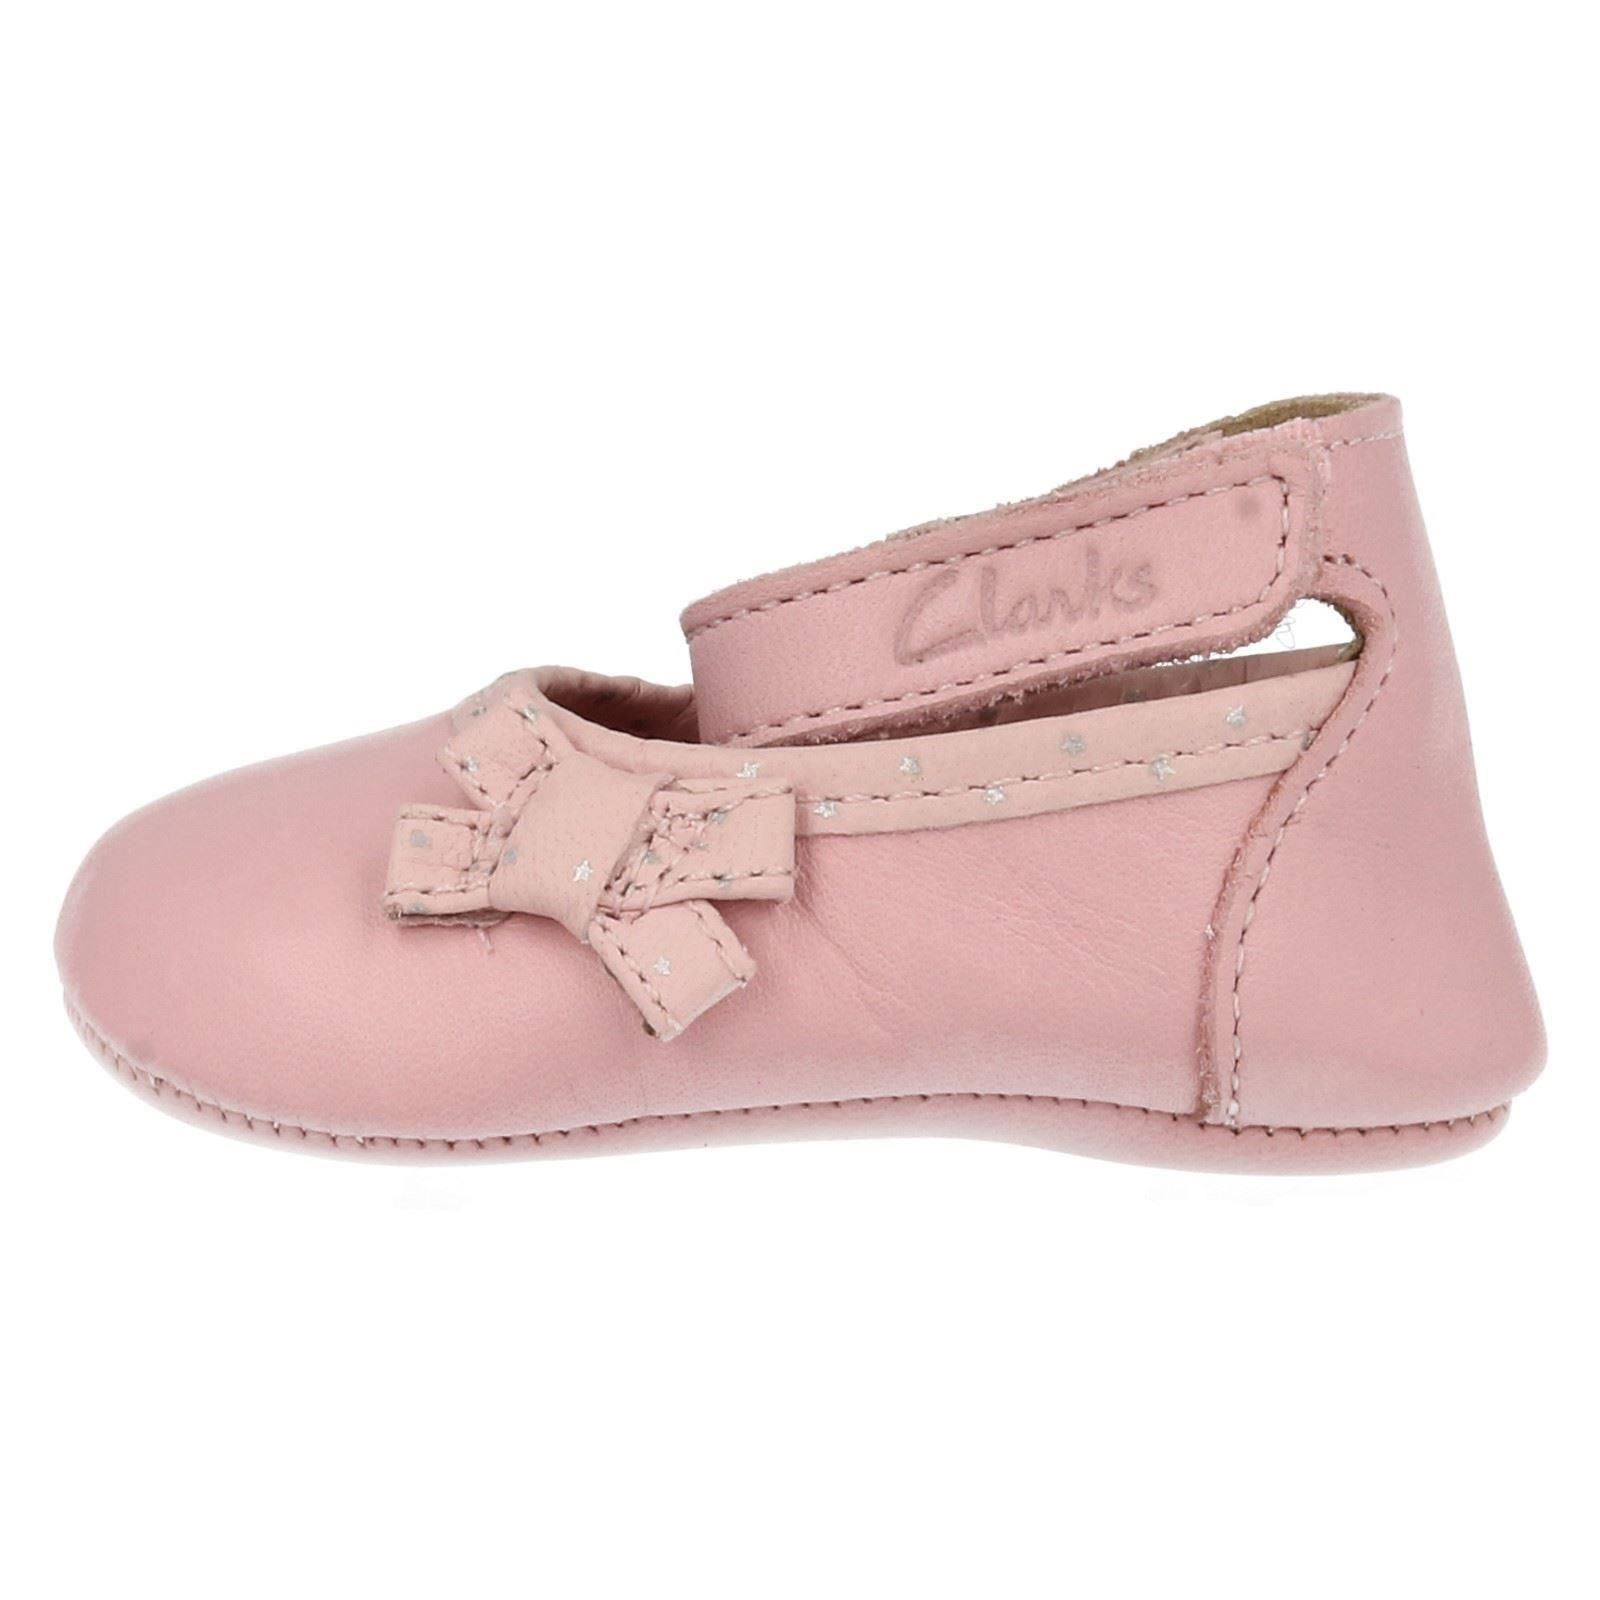 Clarks Girls Soft Leather Pram Shoes With Strap - Baby Harper  0b94a38af474